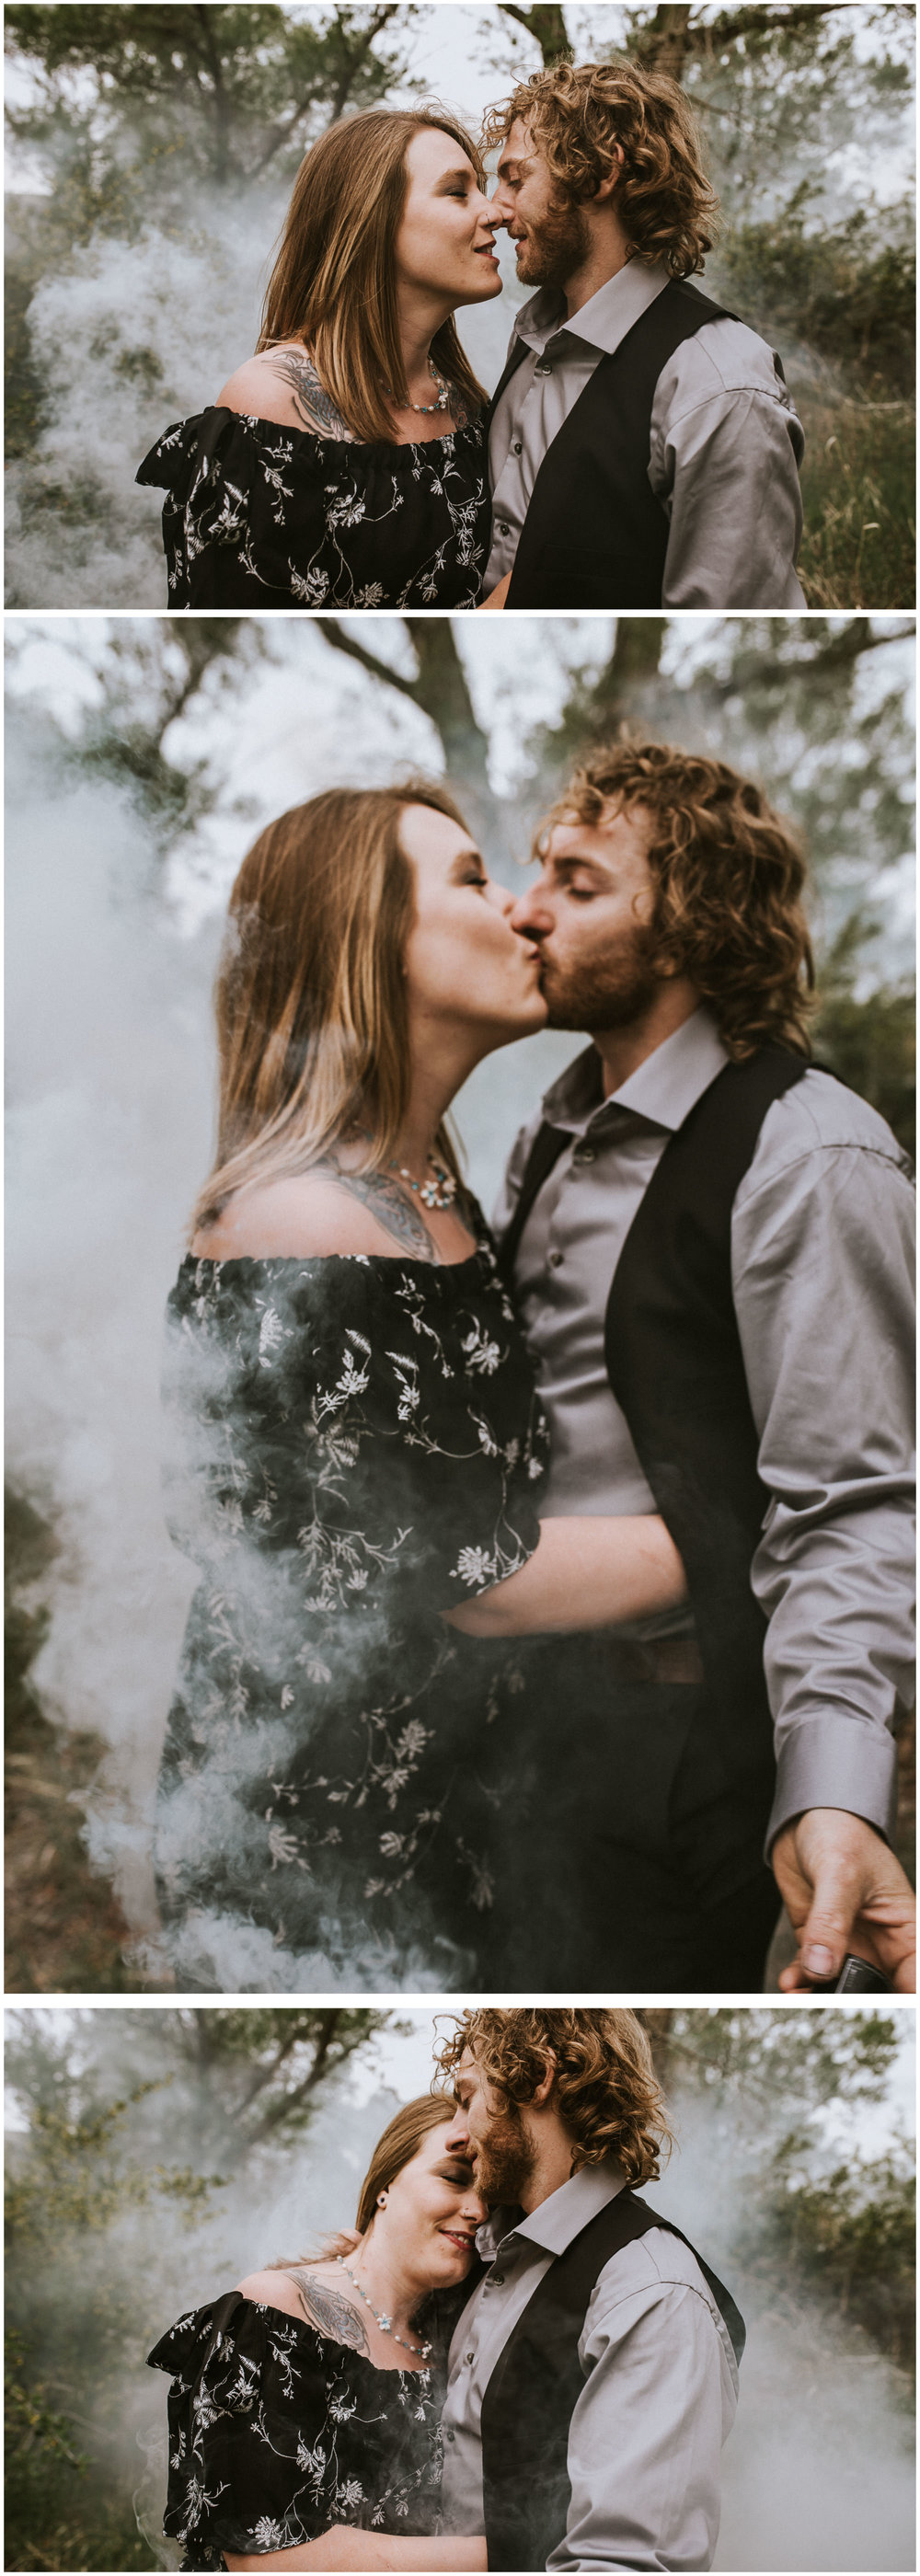 Creative Engagement Session. Shelby, Montana. Sagebrush Studio Photography.